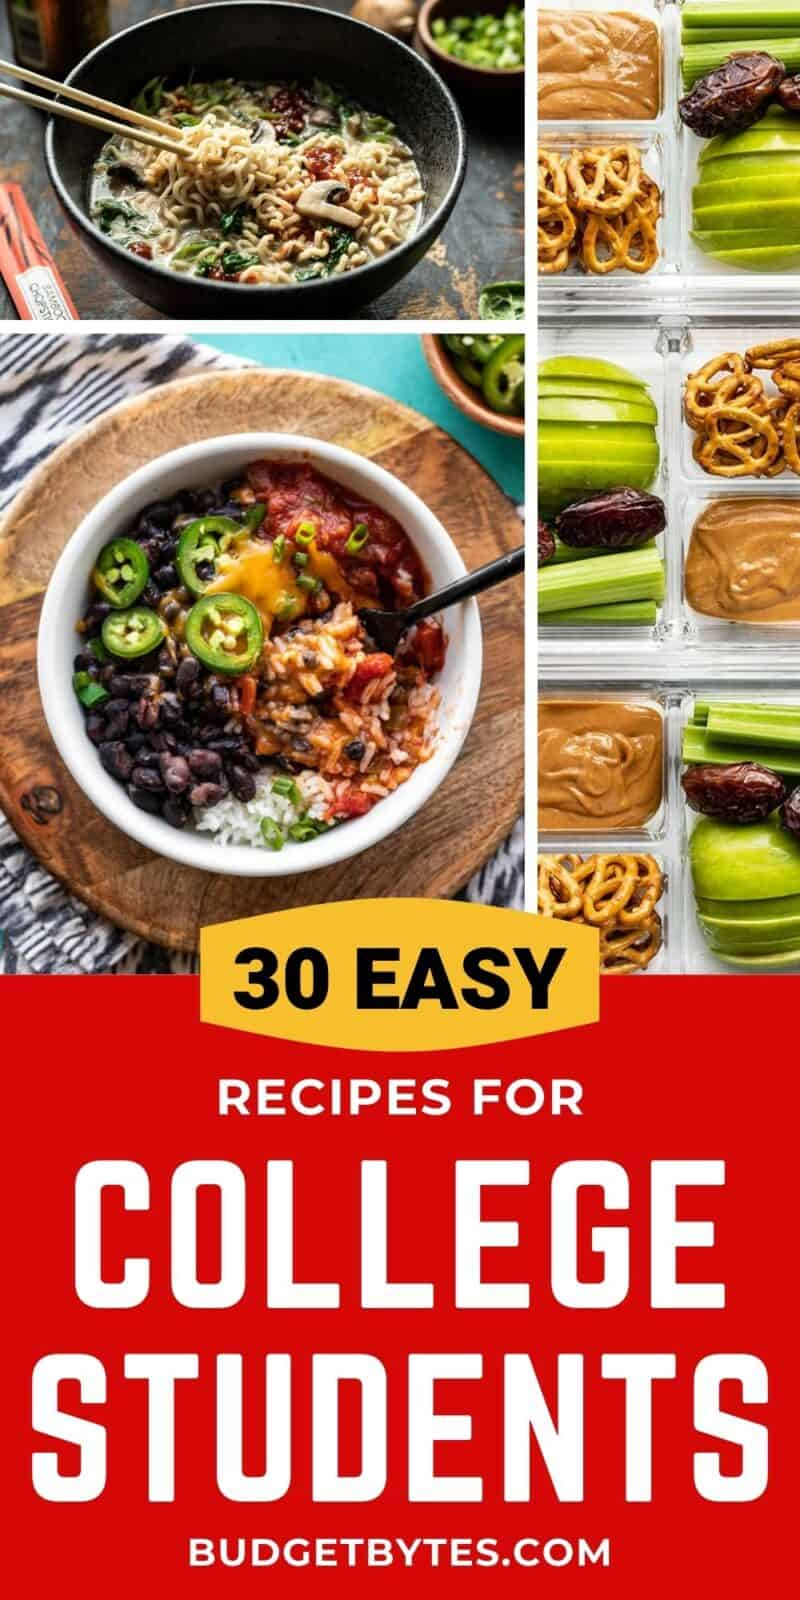 Collage of recipes for college students with title text